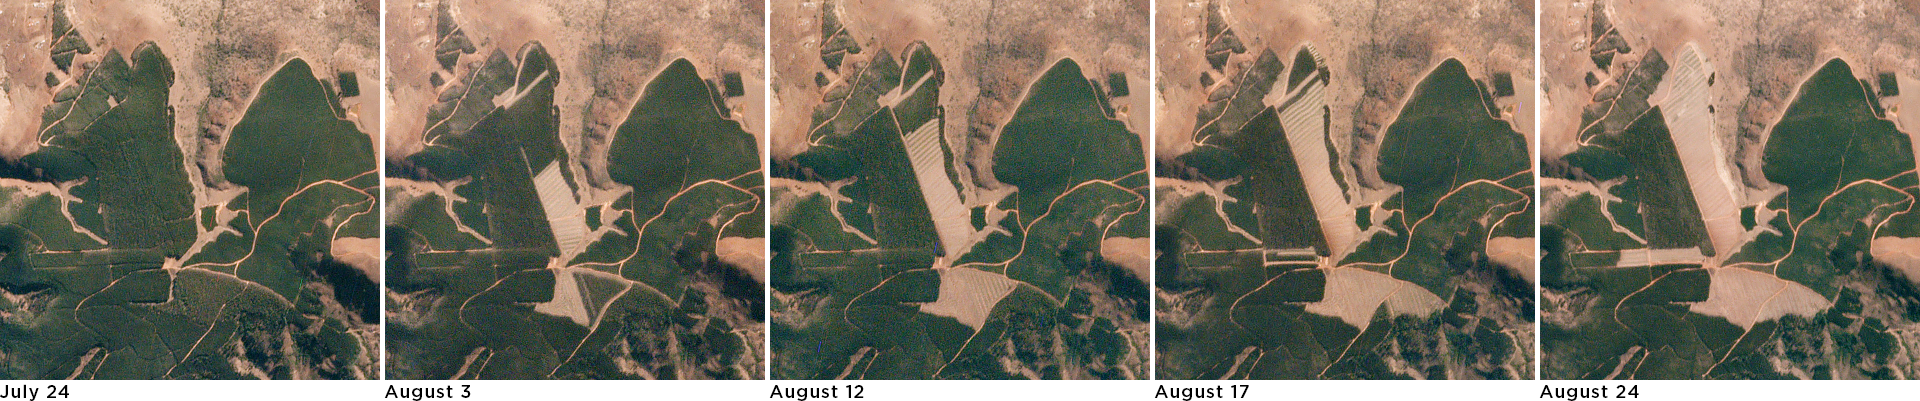 Geospatial provides customers with weekly image comparisons to reflect forest changes. © 2019, Planet Labs Inc. All Rights Reserved.